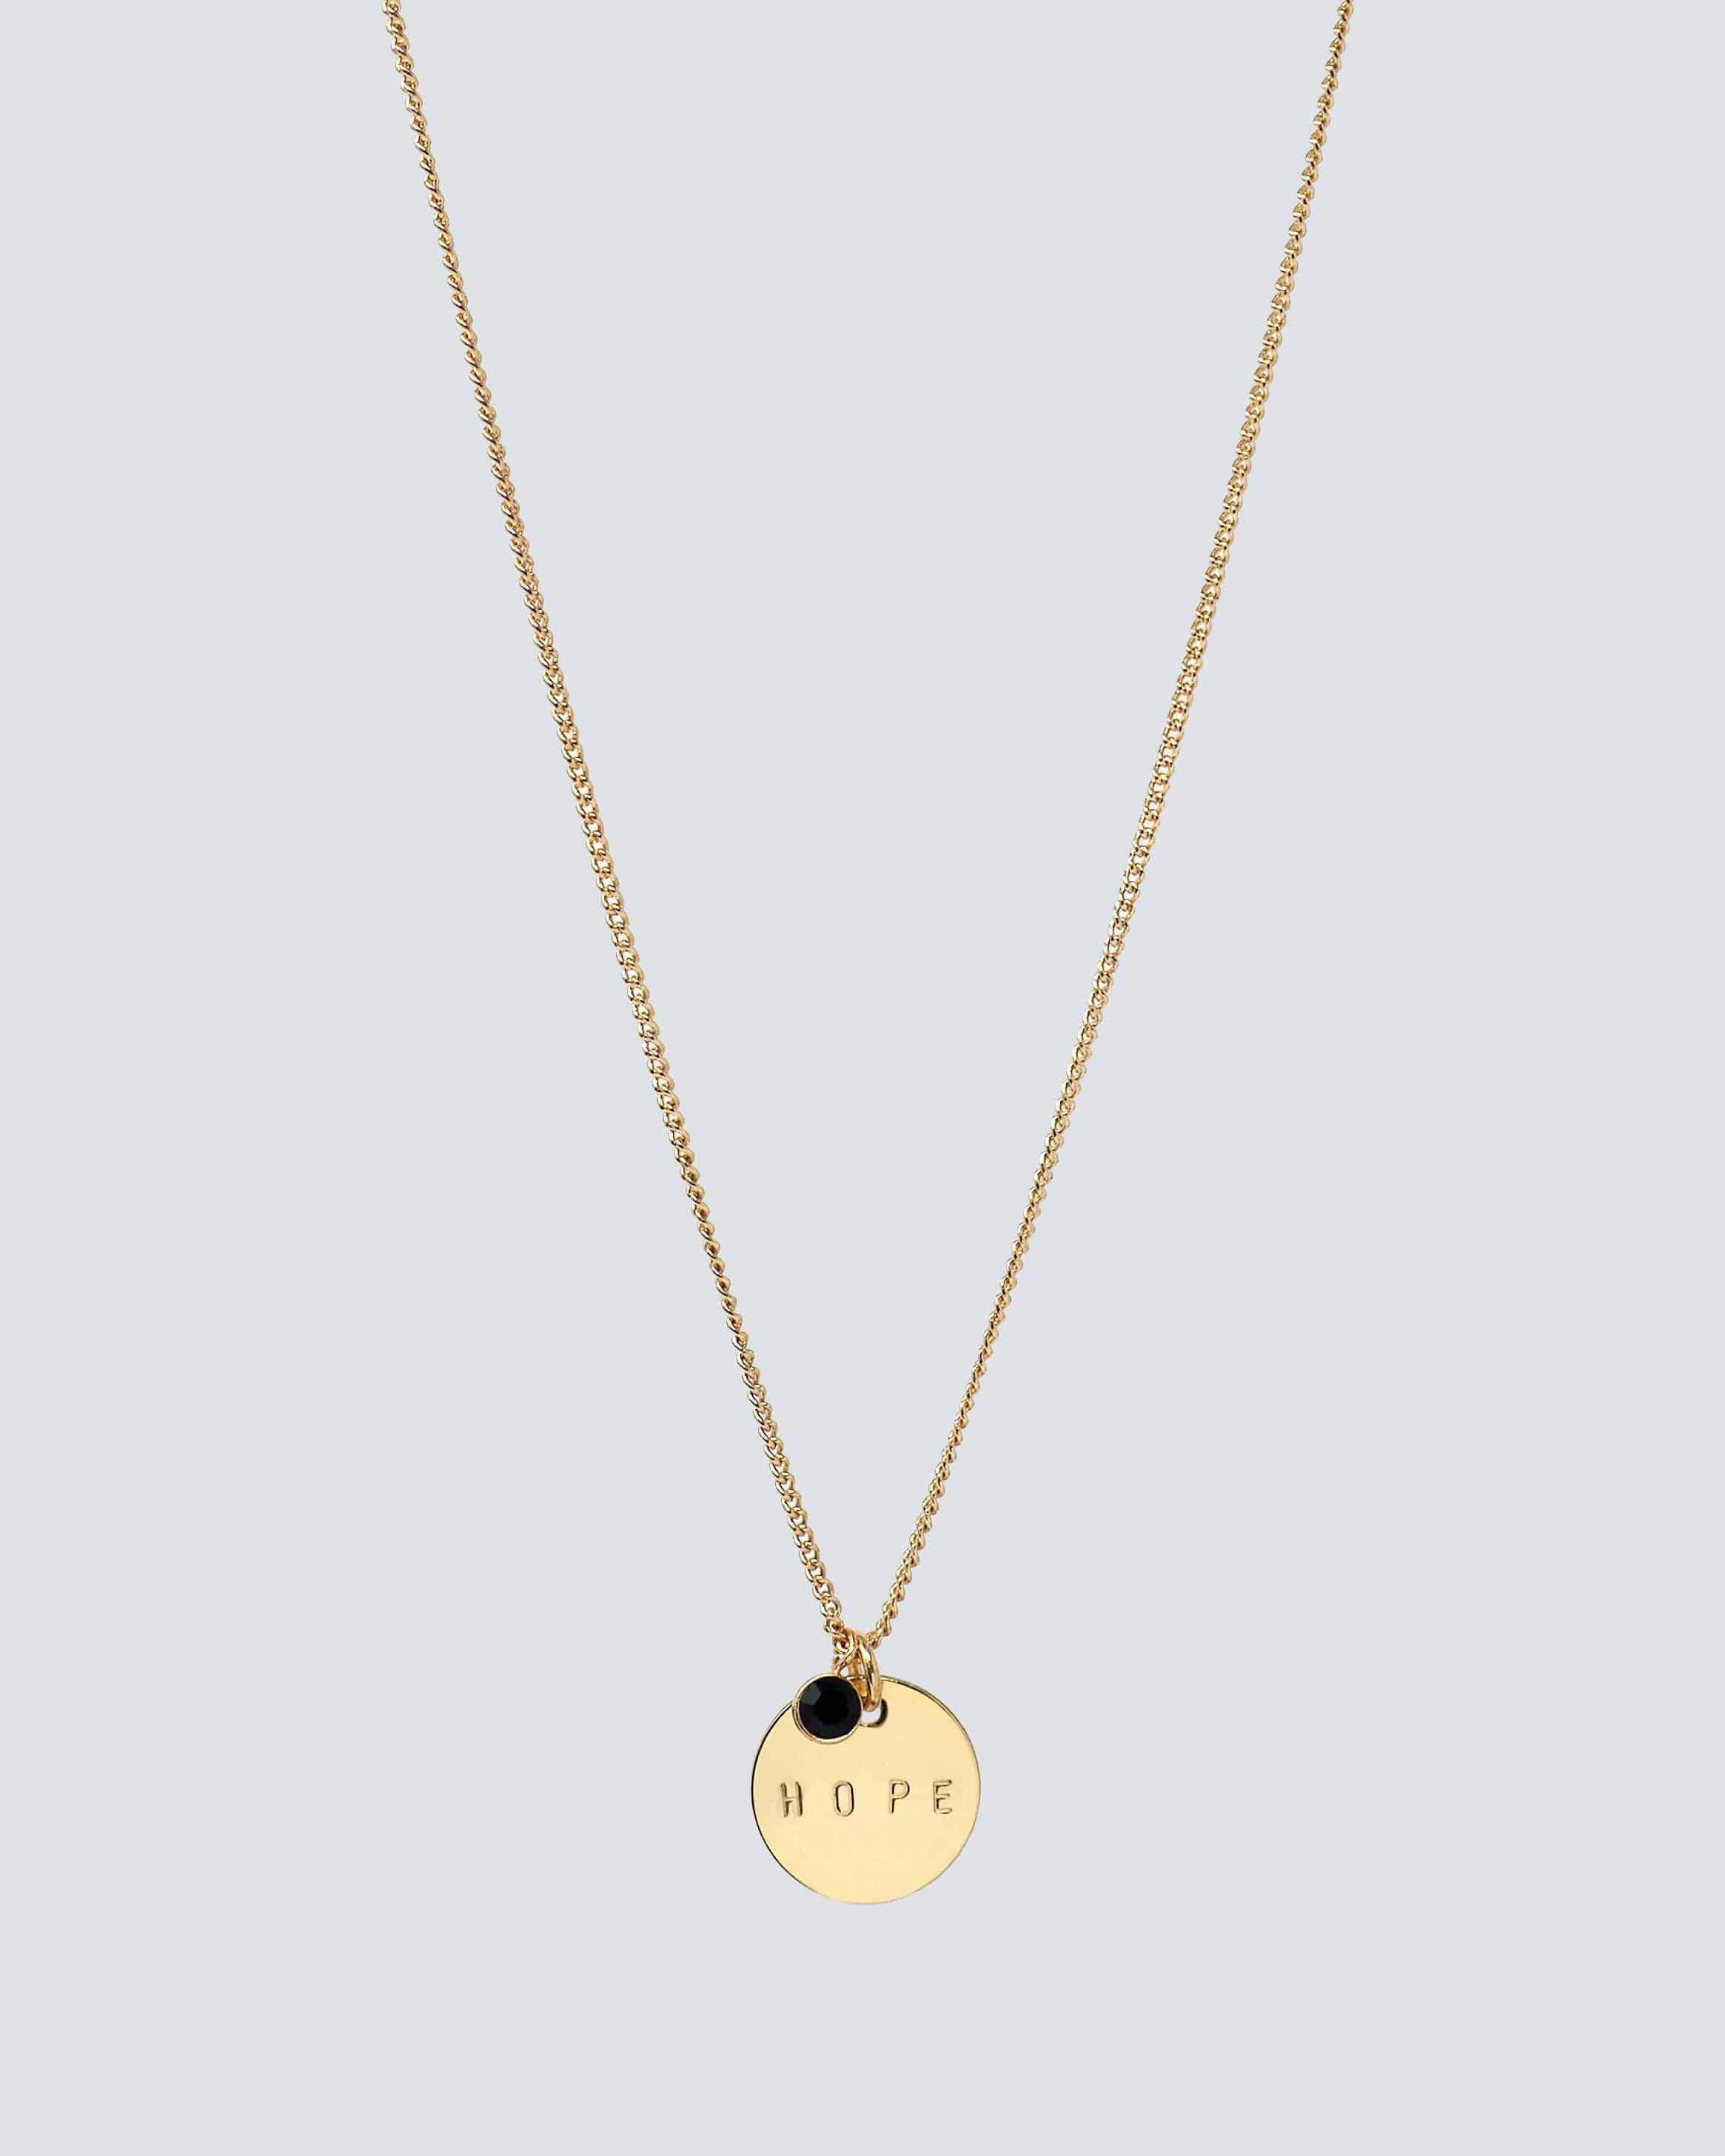 Gold Disc Pendant Necklace With Gemstone Charm Necklaces The Giving Keys Word Assigned by Color Onyx/Hope